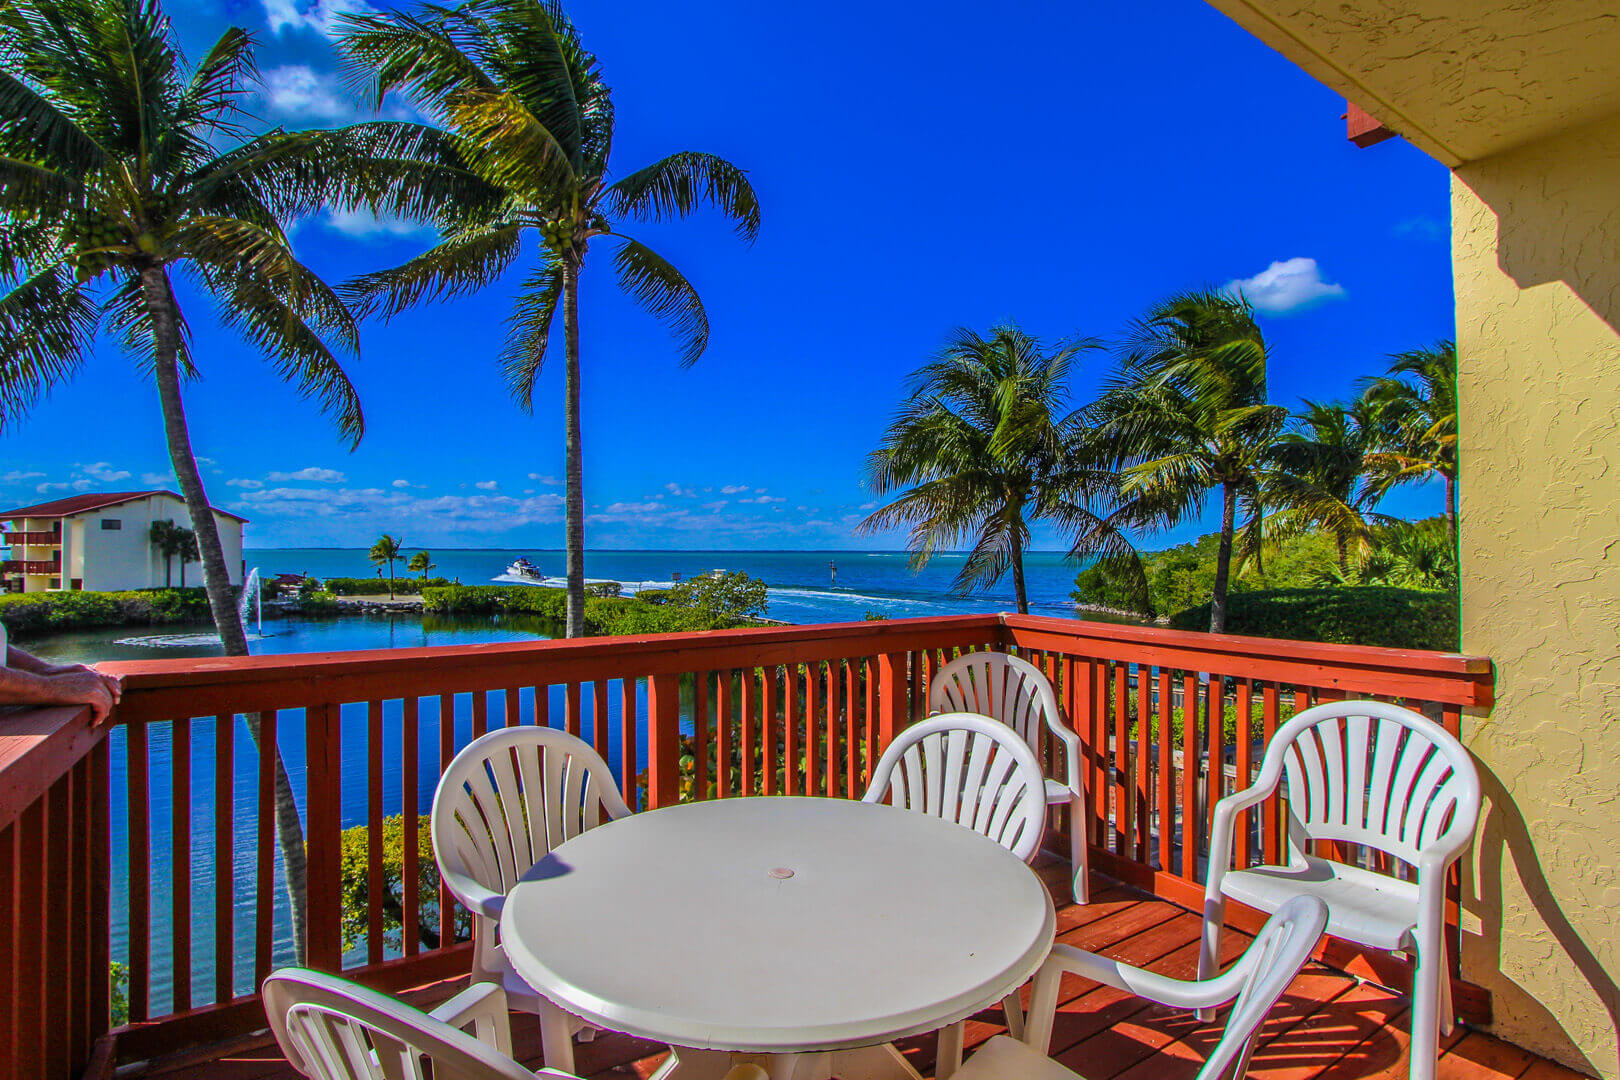 A pristine beach view from the balcony deck at VRI's Florida Bay Club in Florida.